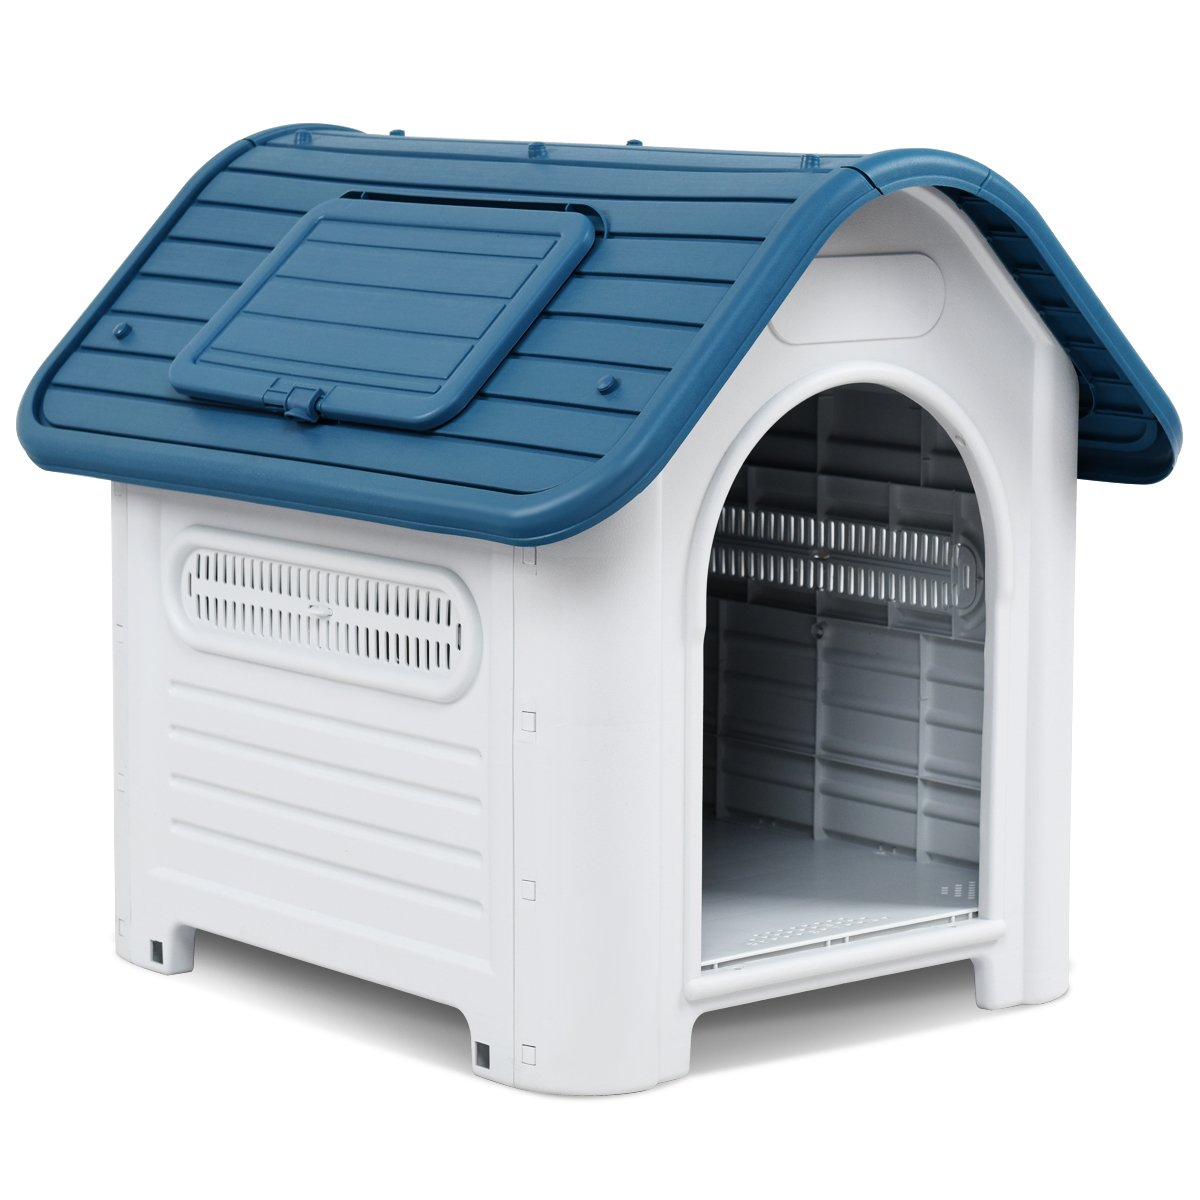 Giantex Outdoor Indoor Pet Dog House Portable Waterproof Plastic Puppy Shelter All Weather Roof Cat Dogs House with/without Skylight (Blue, With Skylight)